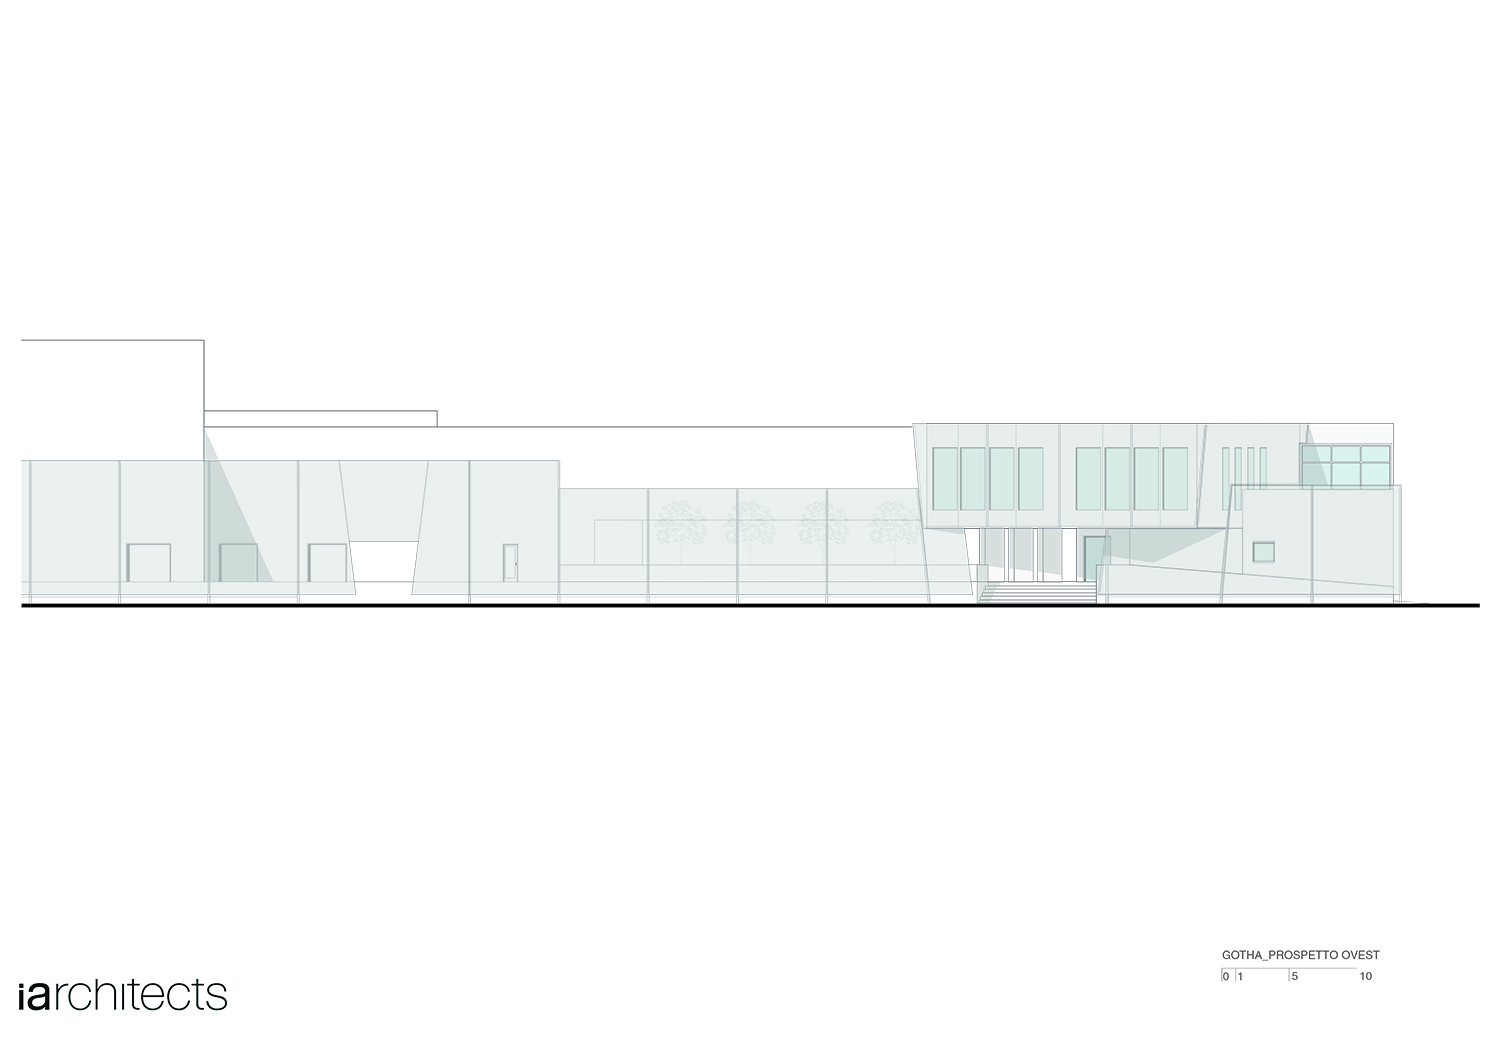 Prospetto ovest Iarchitects}